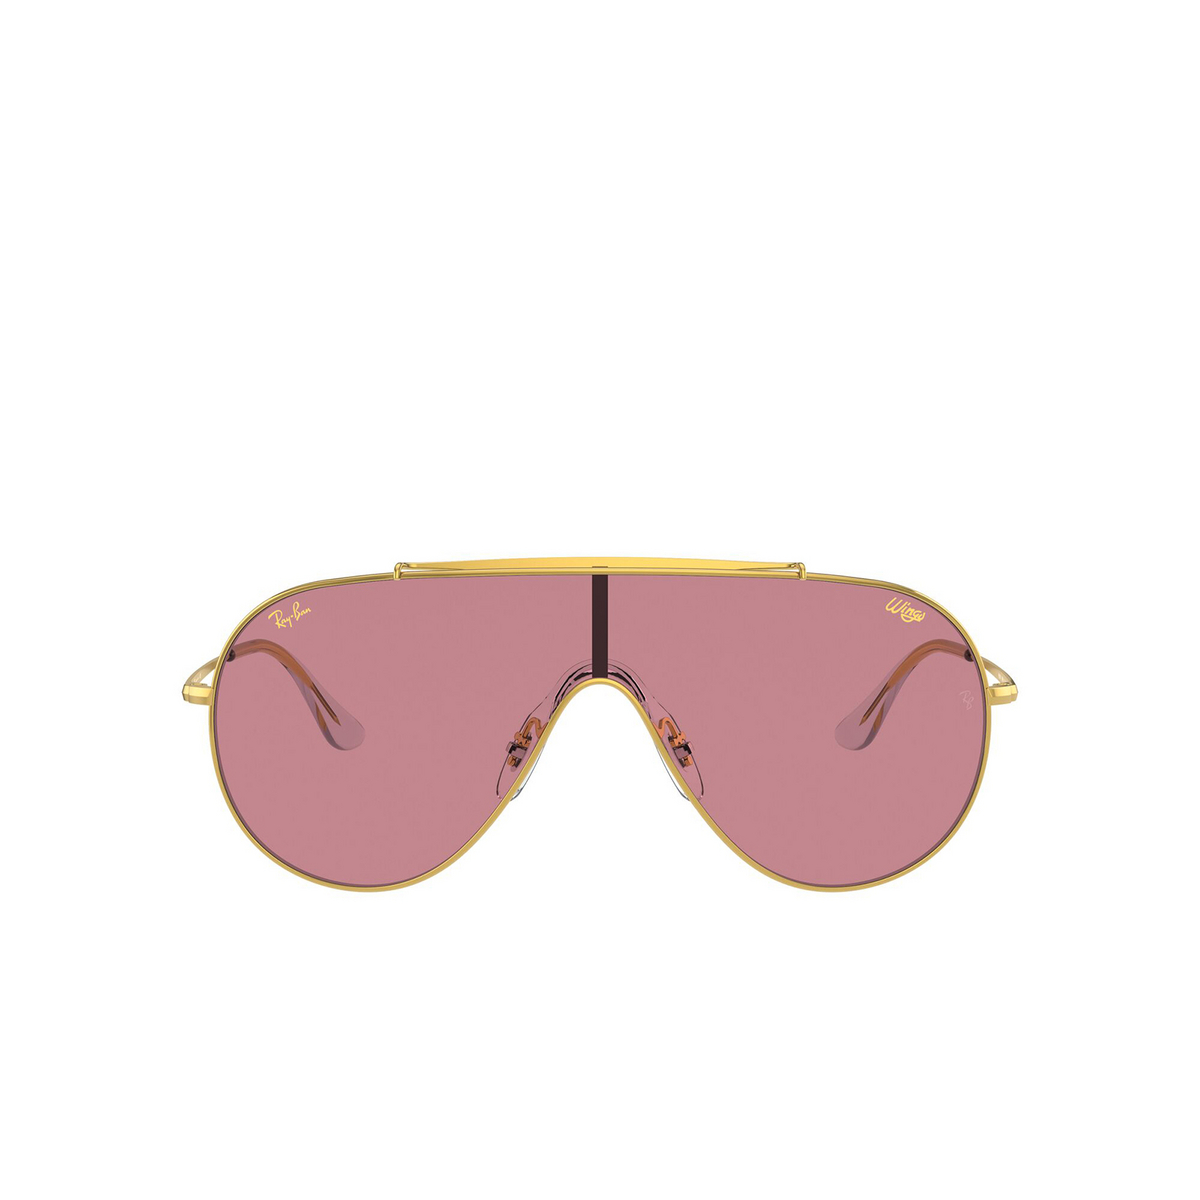 Ray-Ban® Aviator Sunglasses: Wings RB3597 color Legend Gold 919684 - front view.